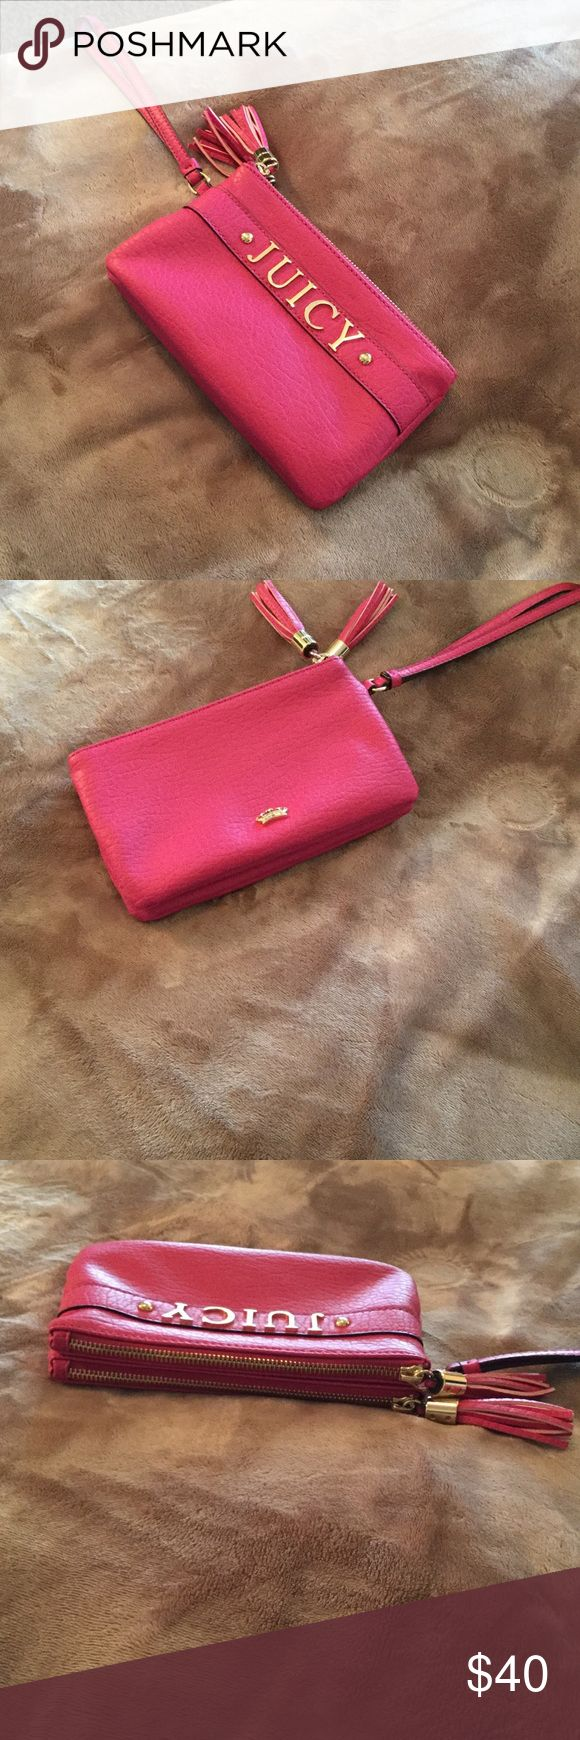 Women's Wristlet Hot pink with gold lettering- two pockets for putting stuff- AUTHENTIC NWOT Juicy Couture Bags Clutches & Wristlets